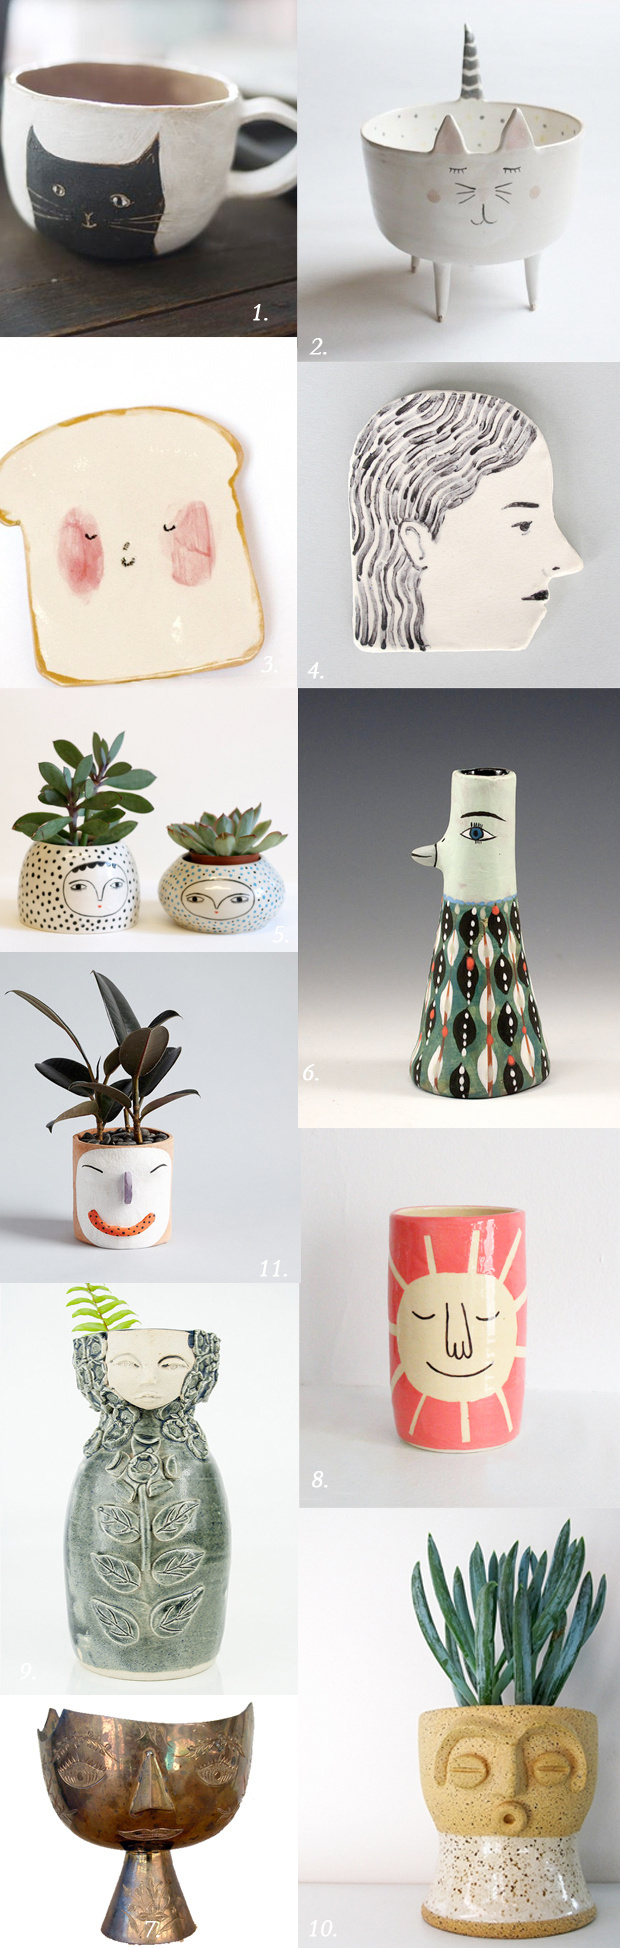 vessels with personality #ceramics #vessels